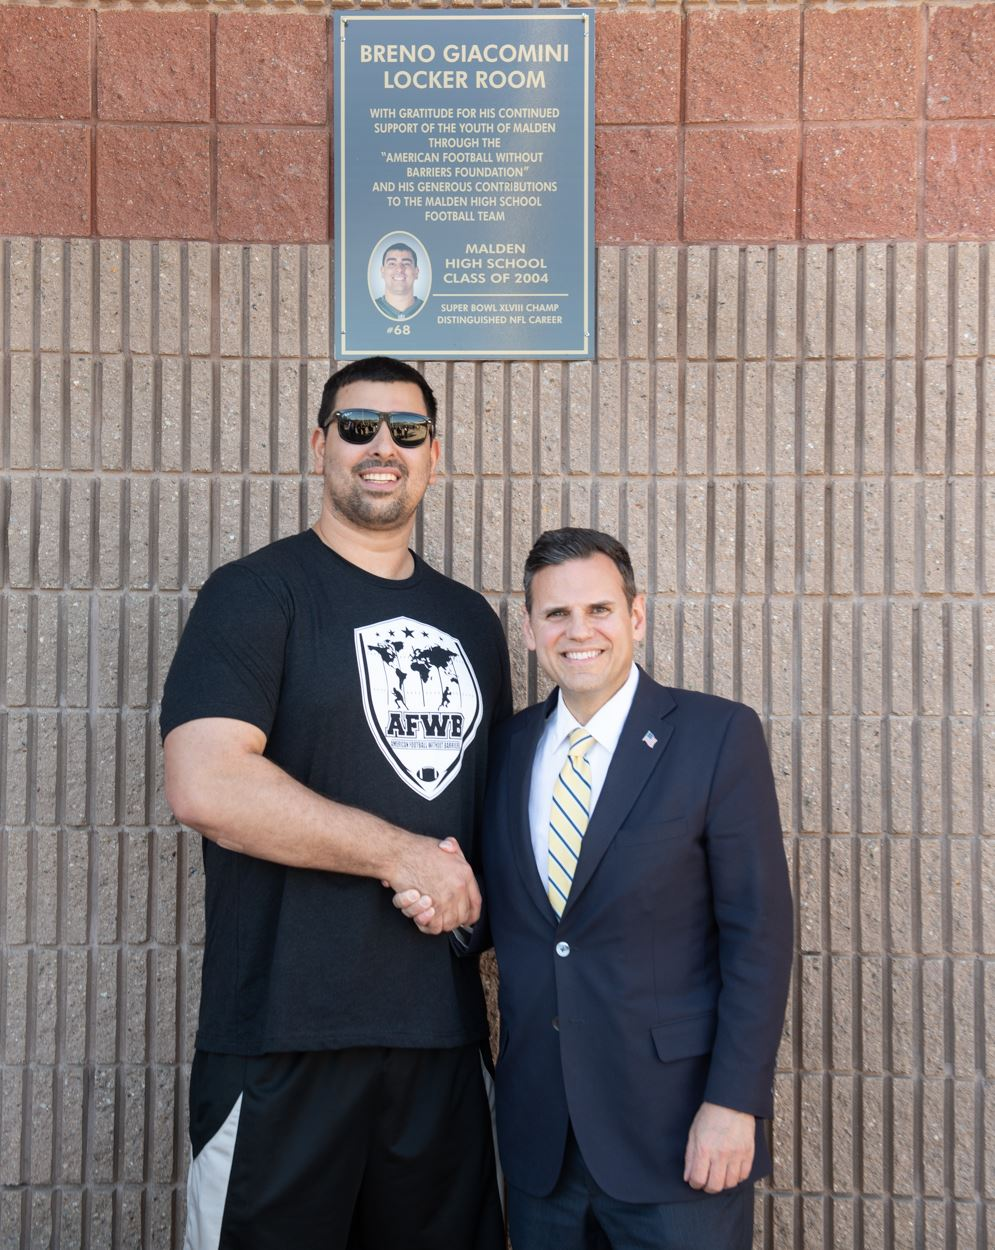 Breno Giacomini and Mayor Gary Christenson